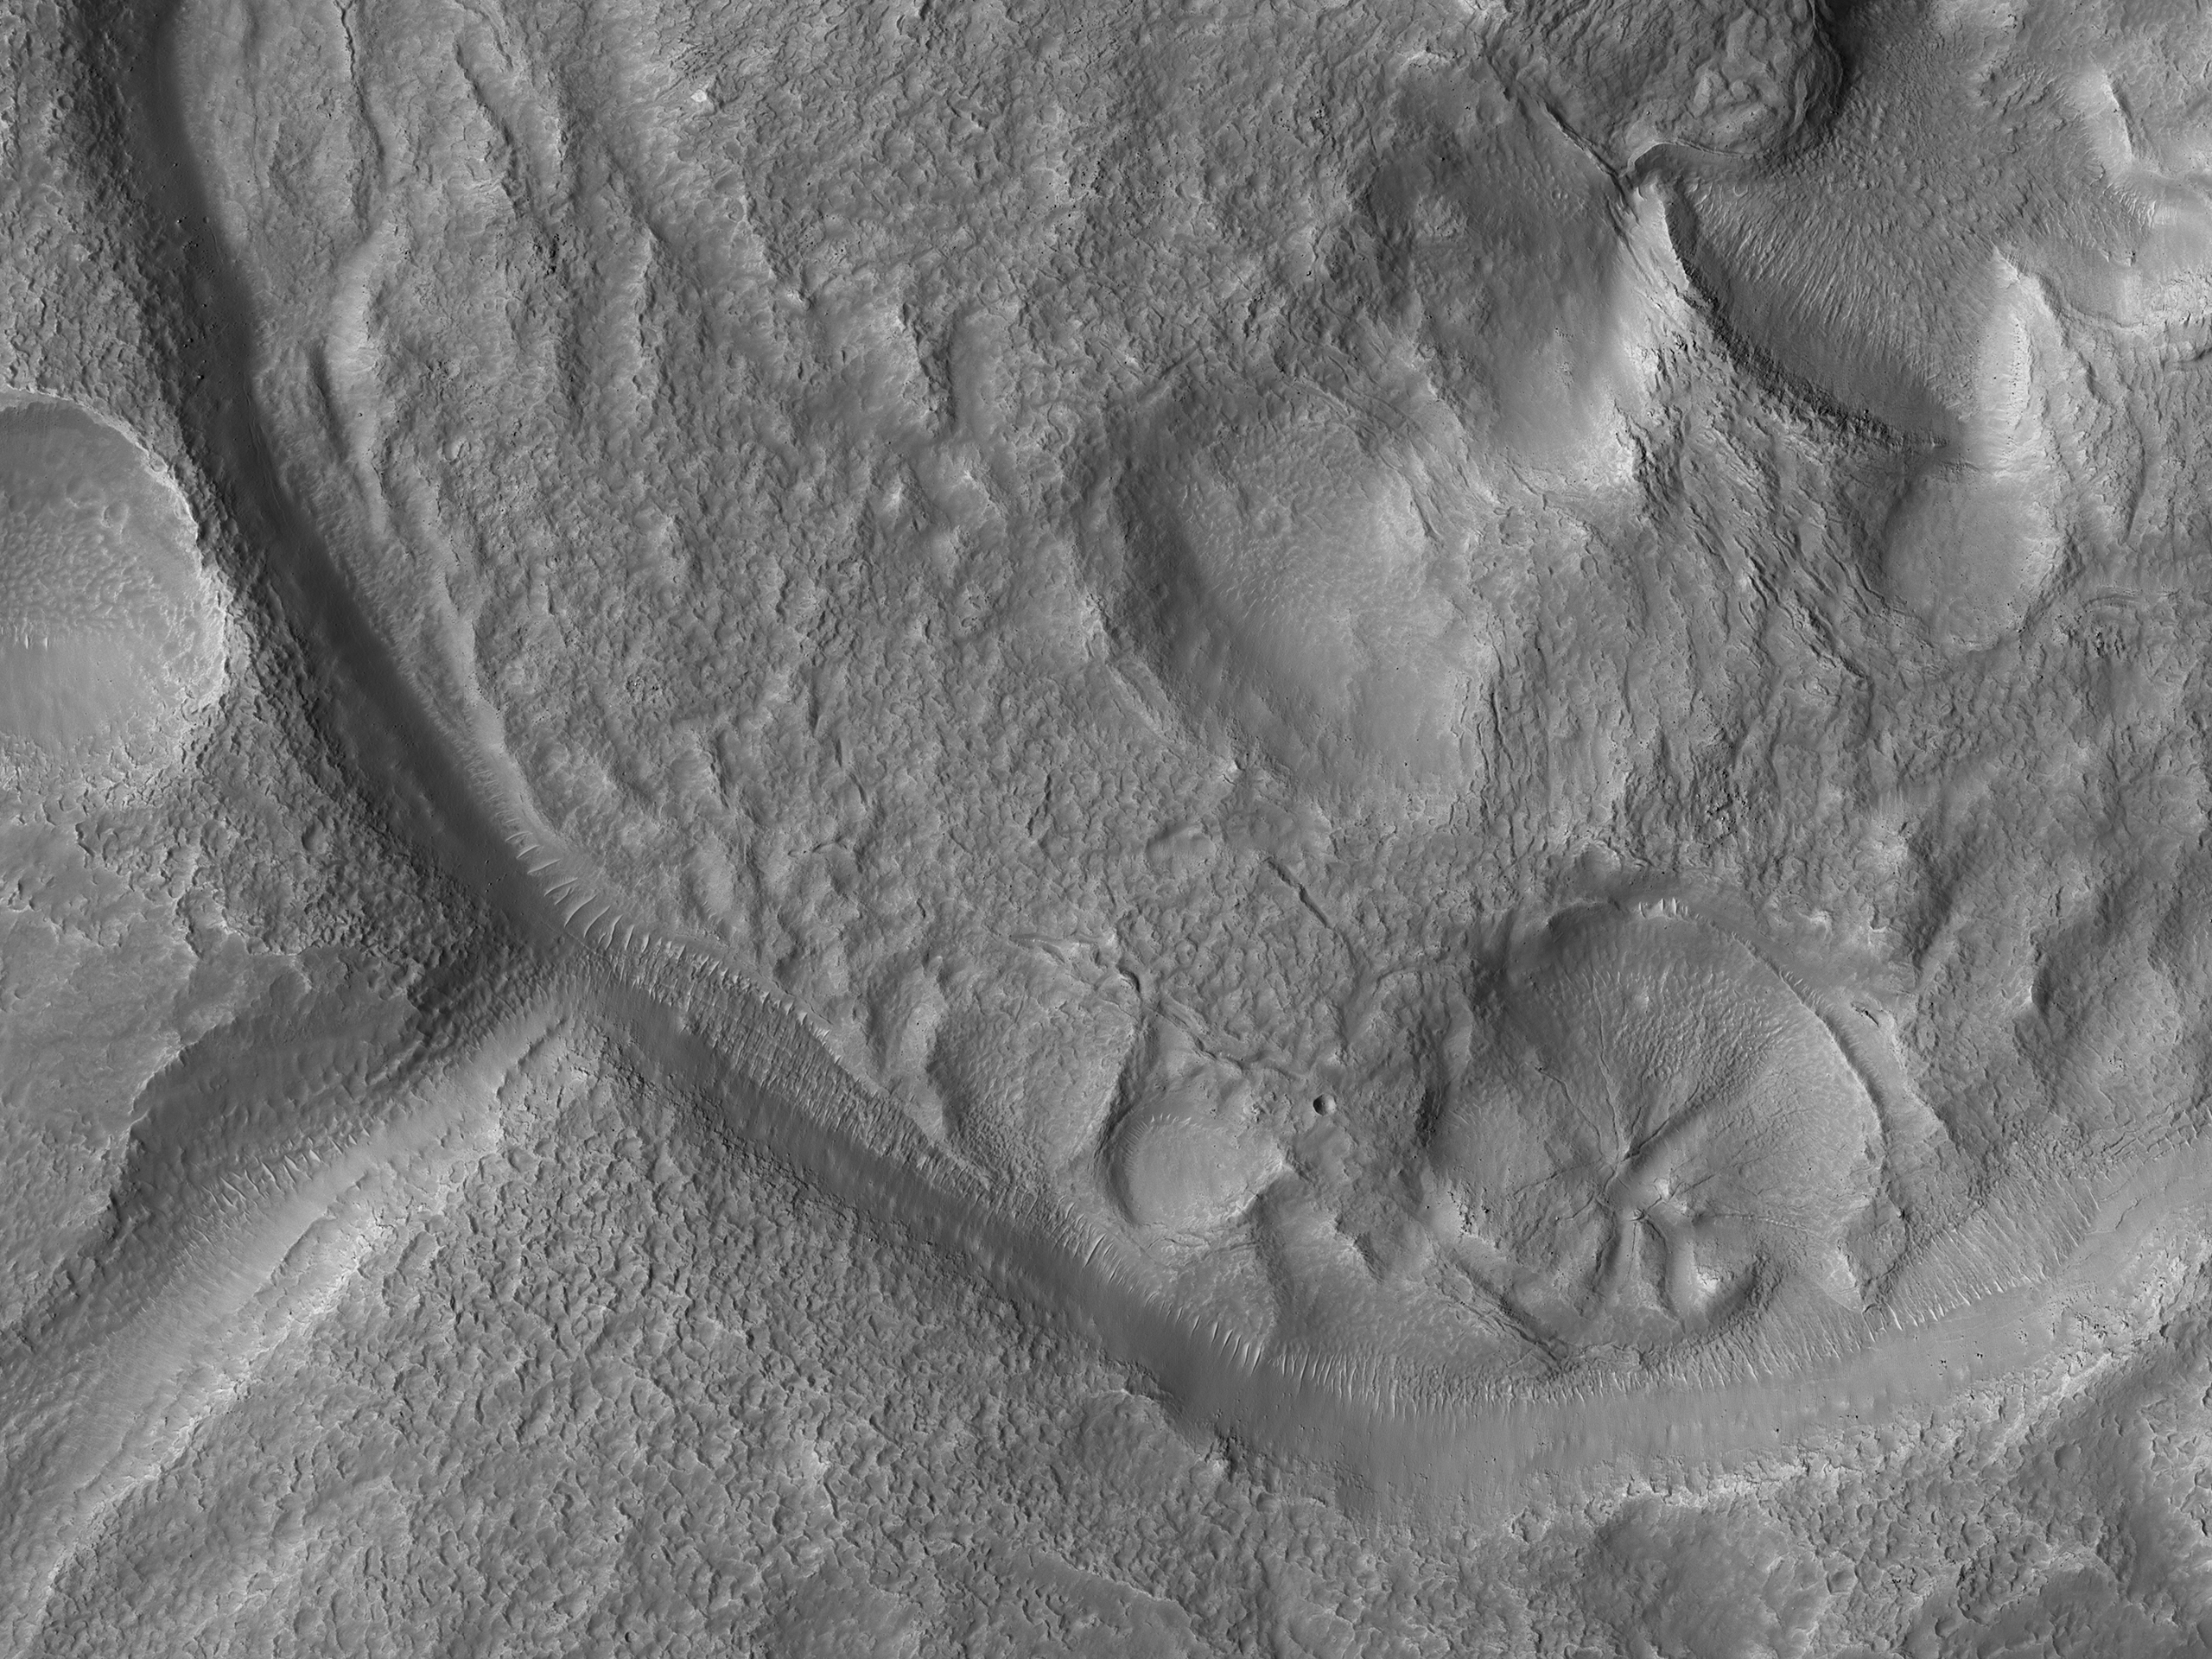 Pollywog Craters on Mars